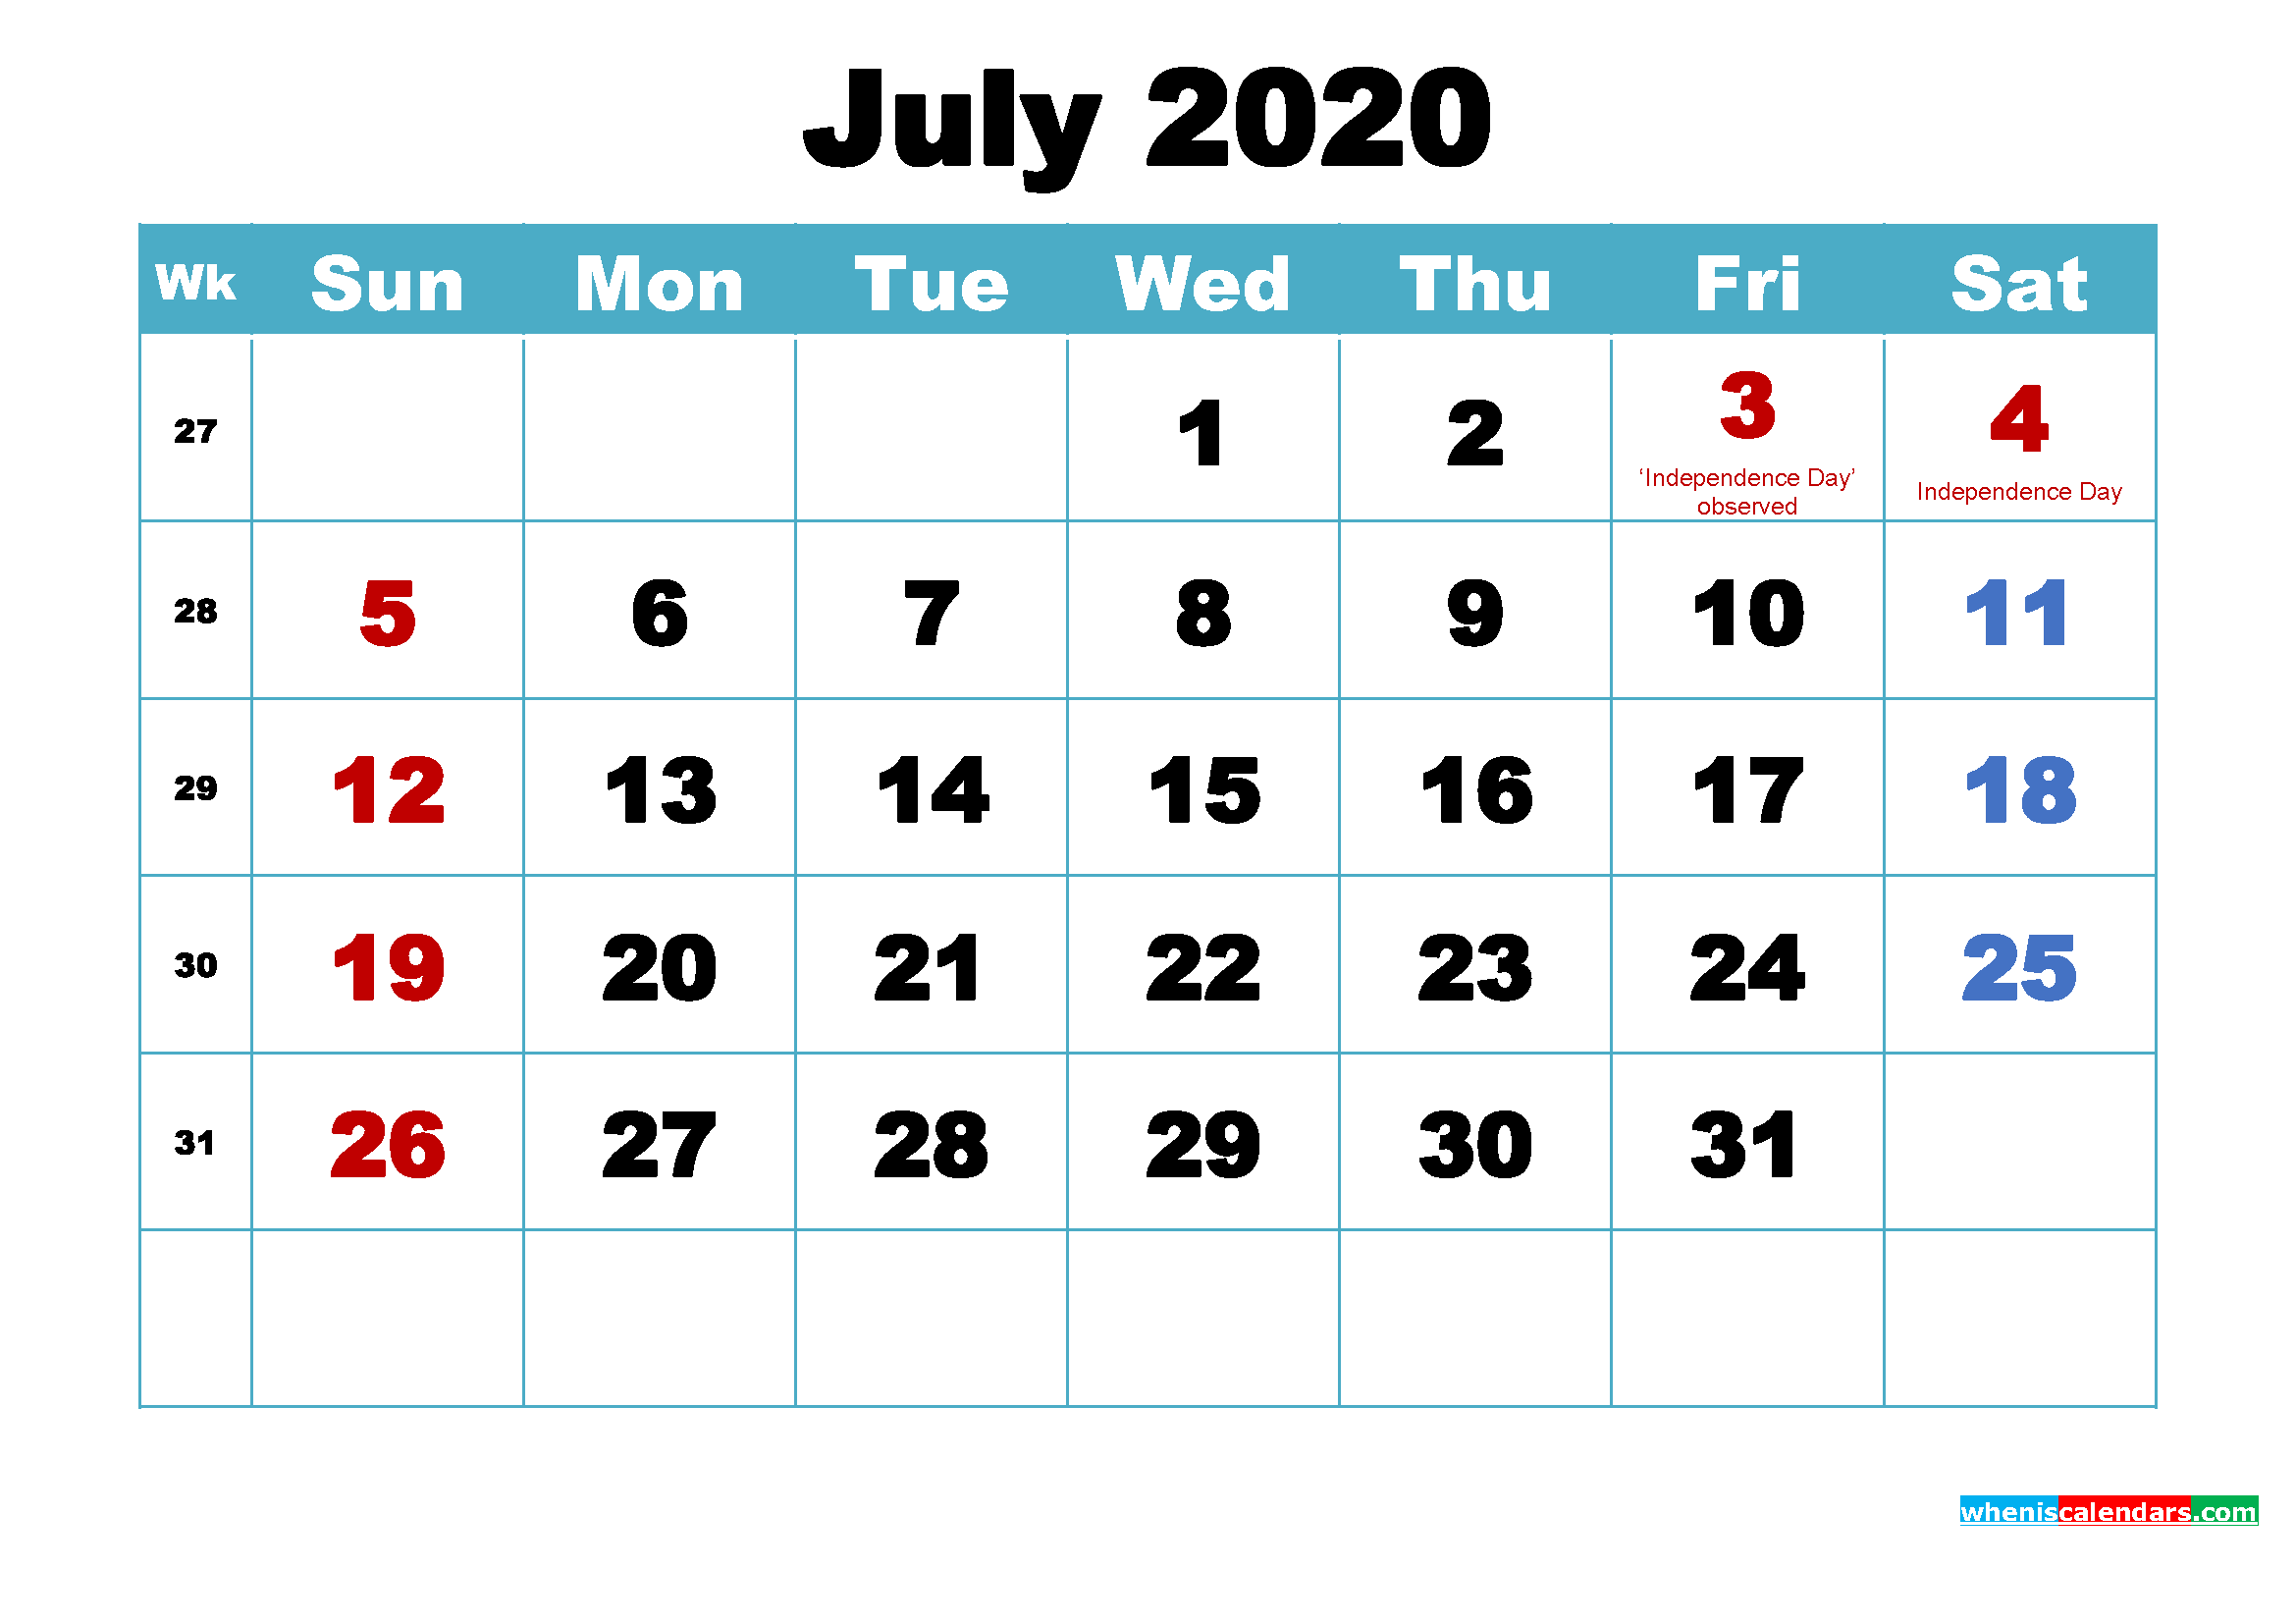 Printable July 2020 Calendar by Month